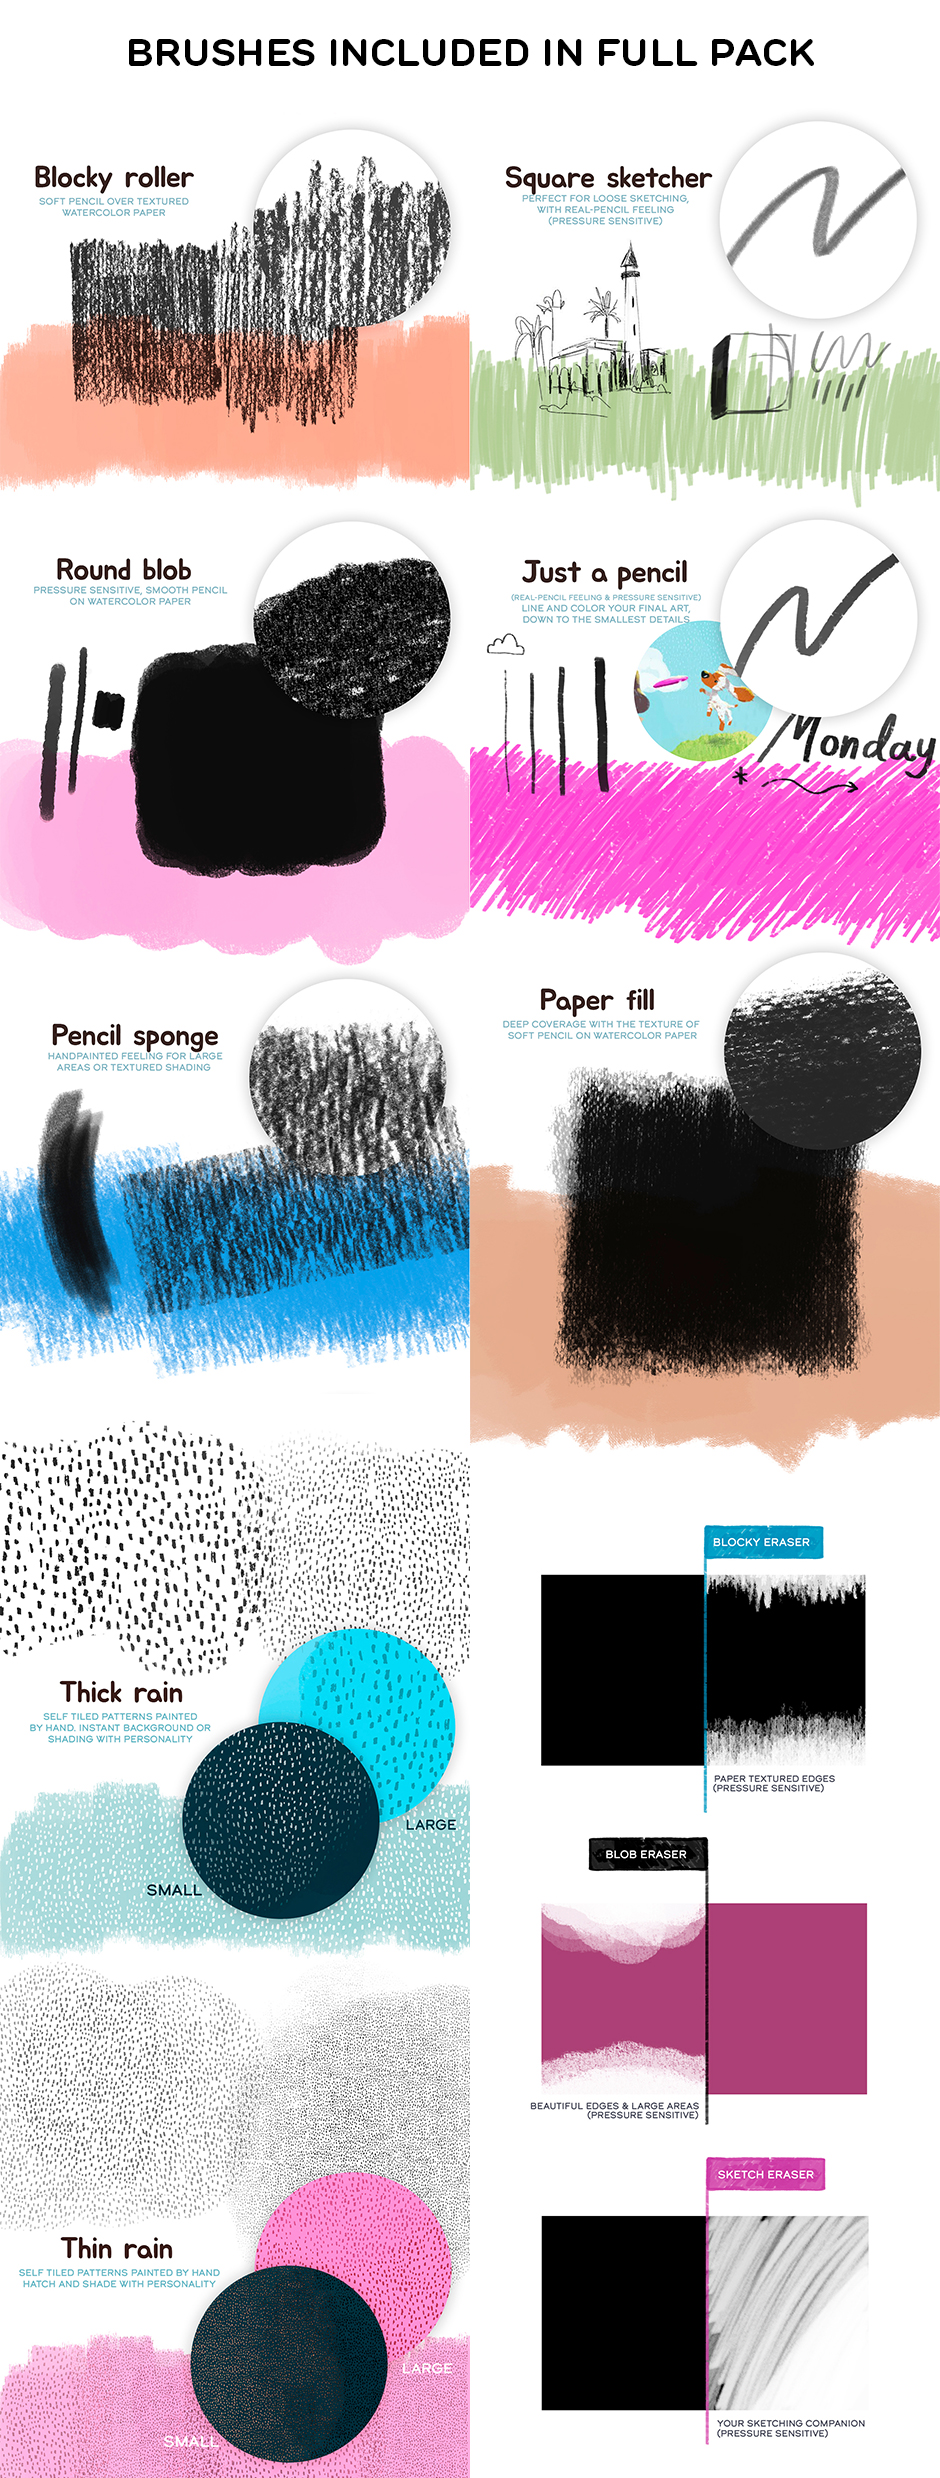 HOMwork Freebie: Laura's Real Pencil And Paper Photoshop Brushes